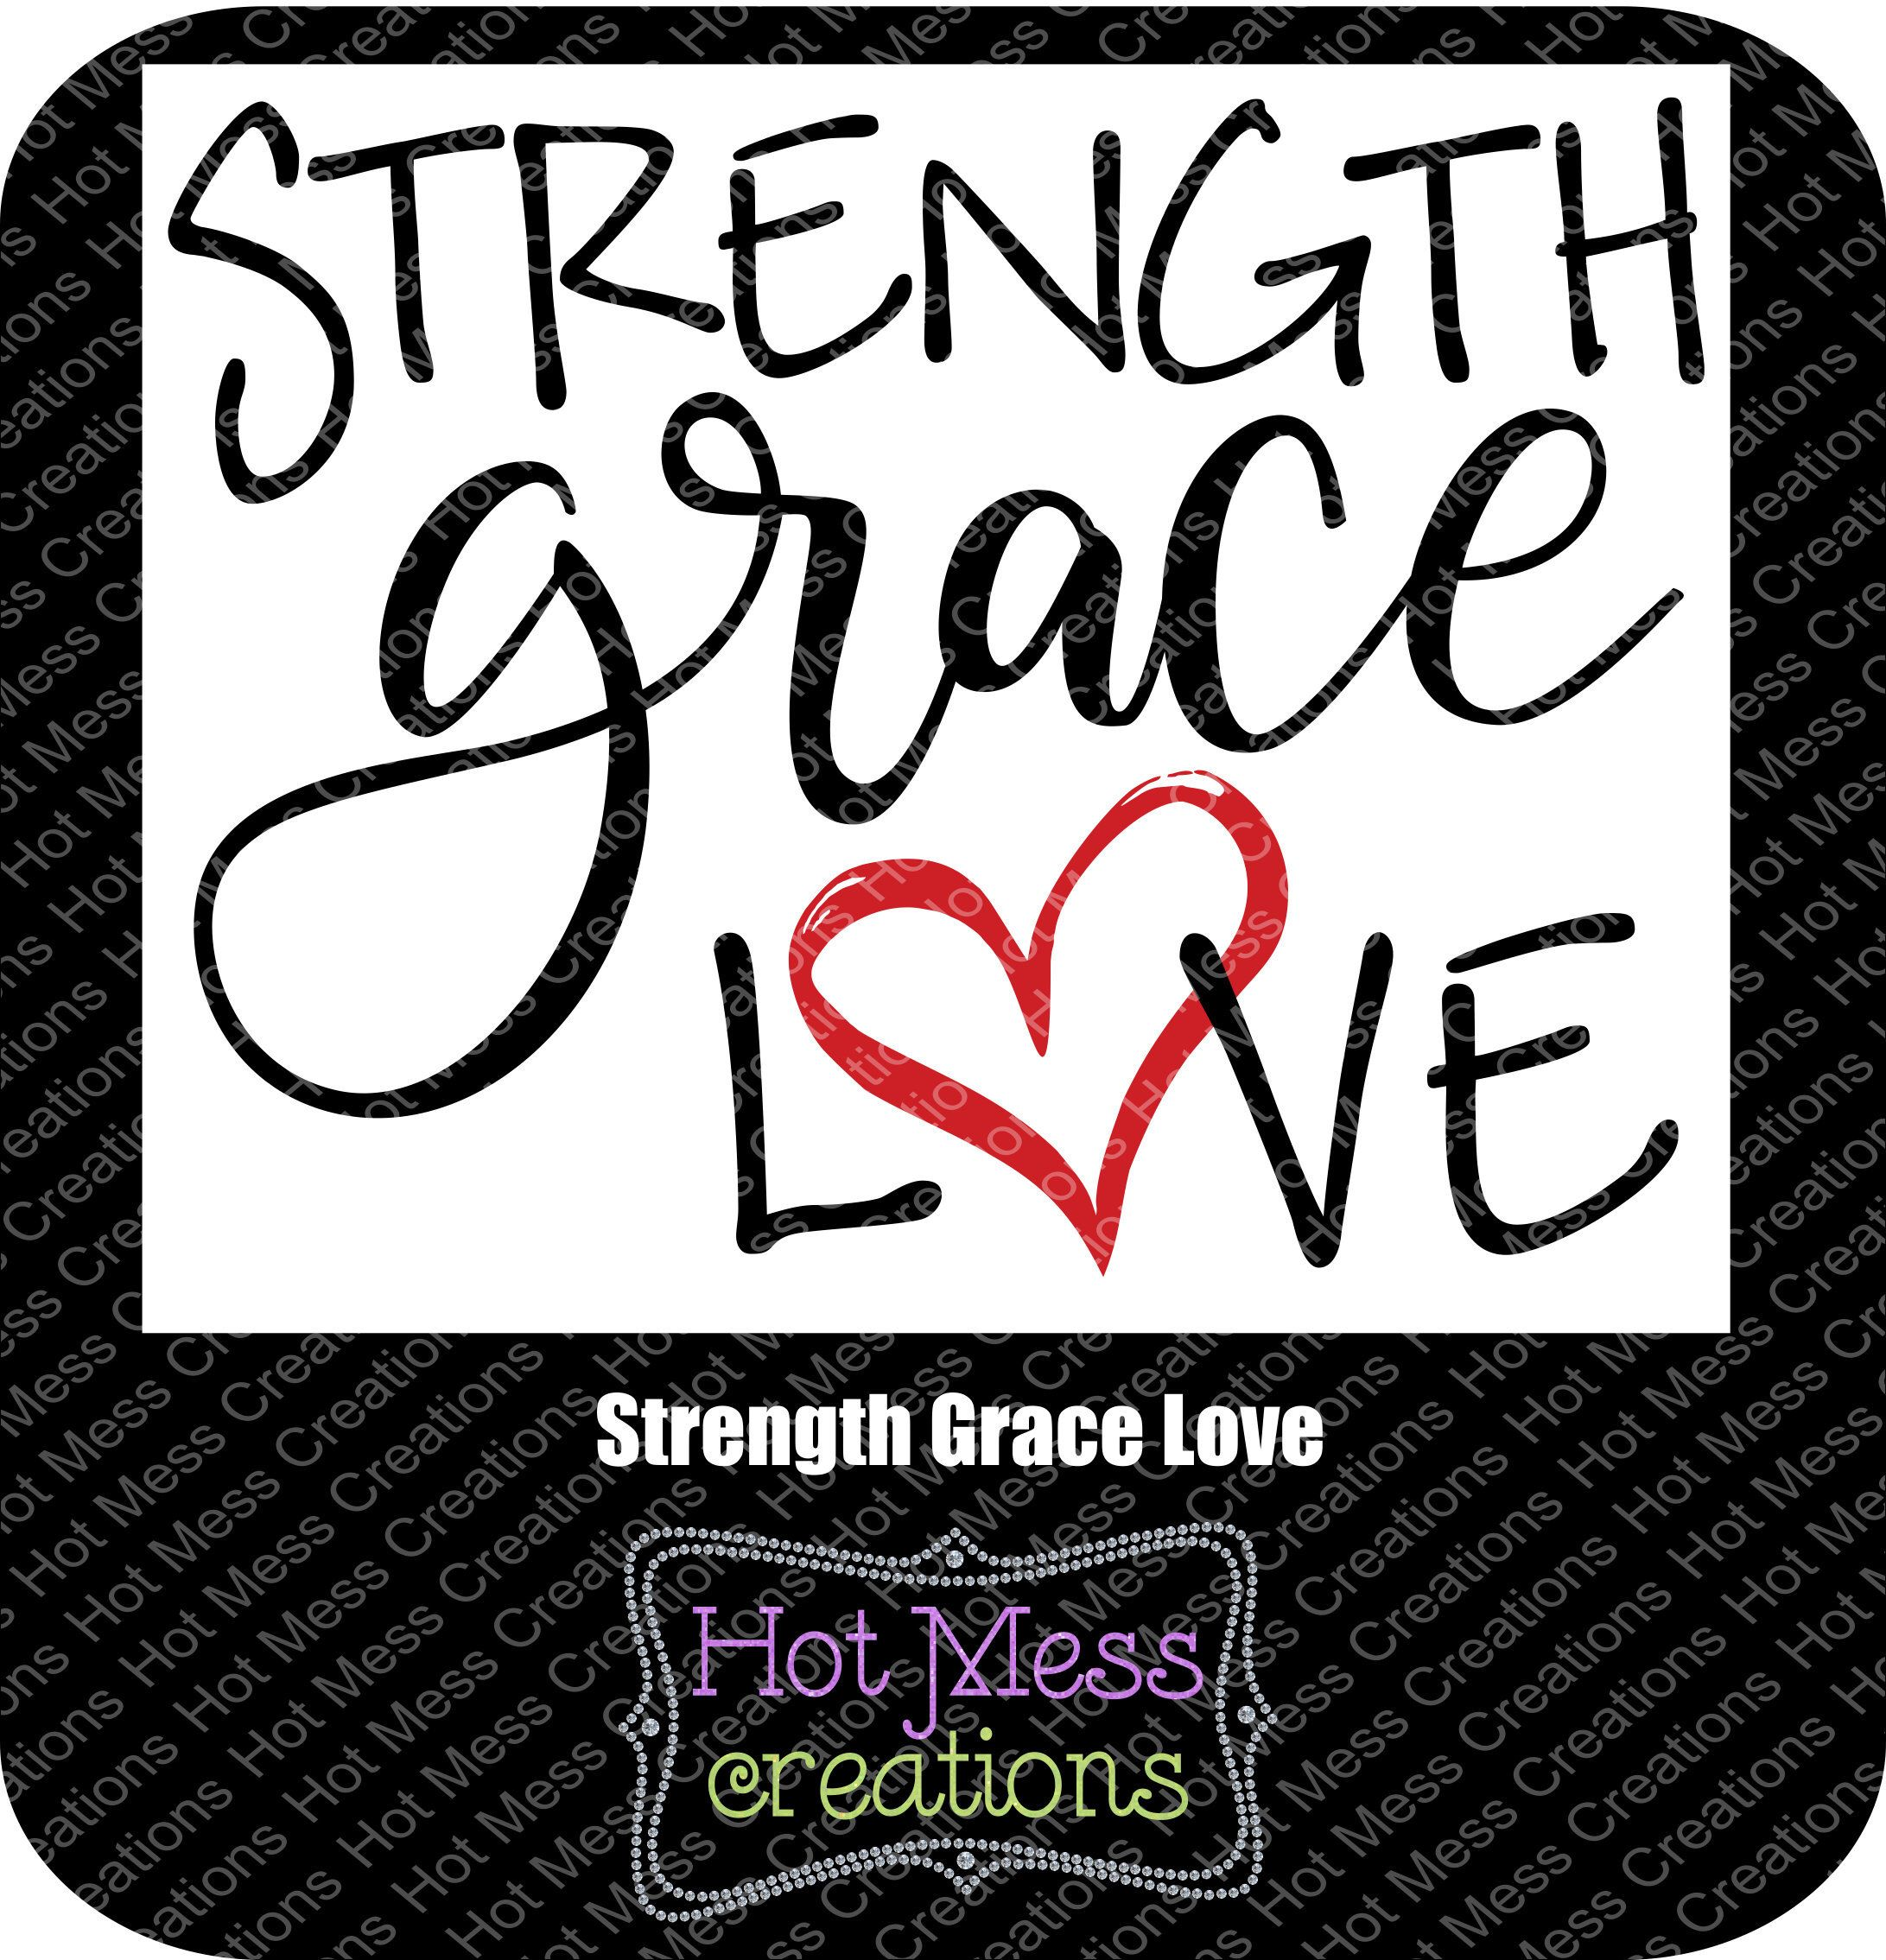 Download Strength Grace Love SVG DXF PNG - Inspirational Saying ...